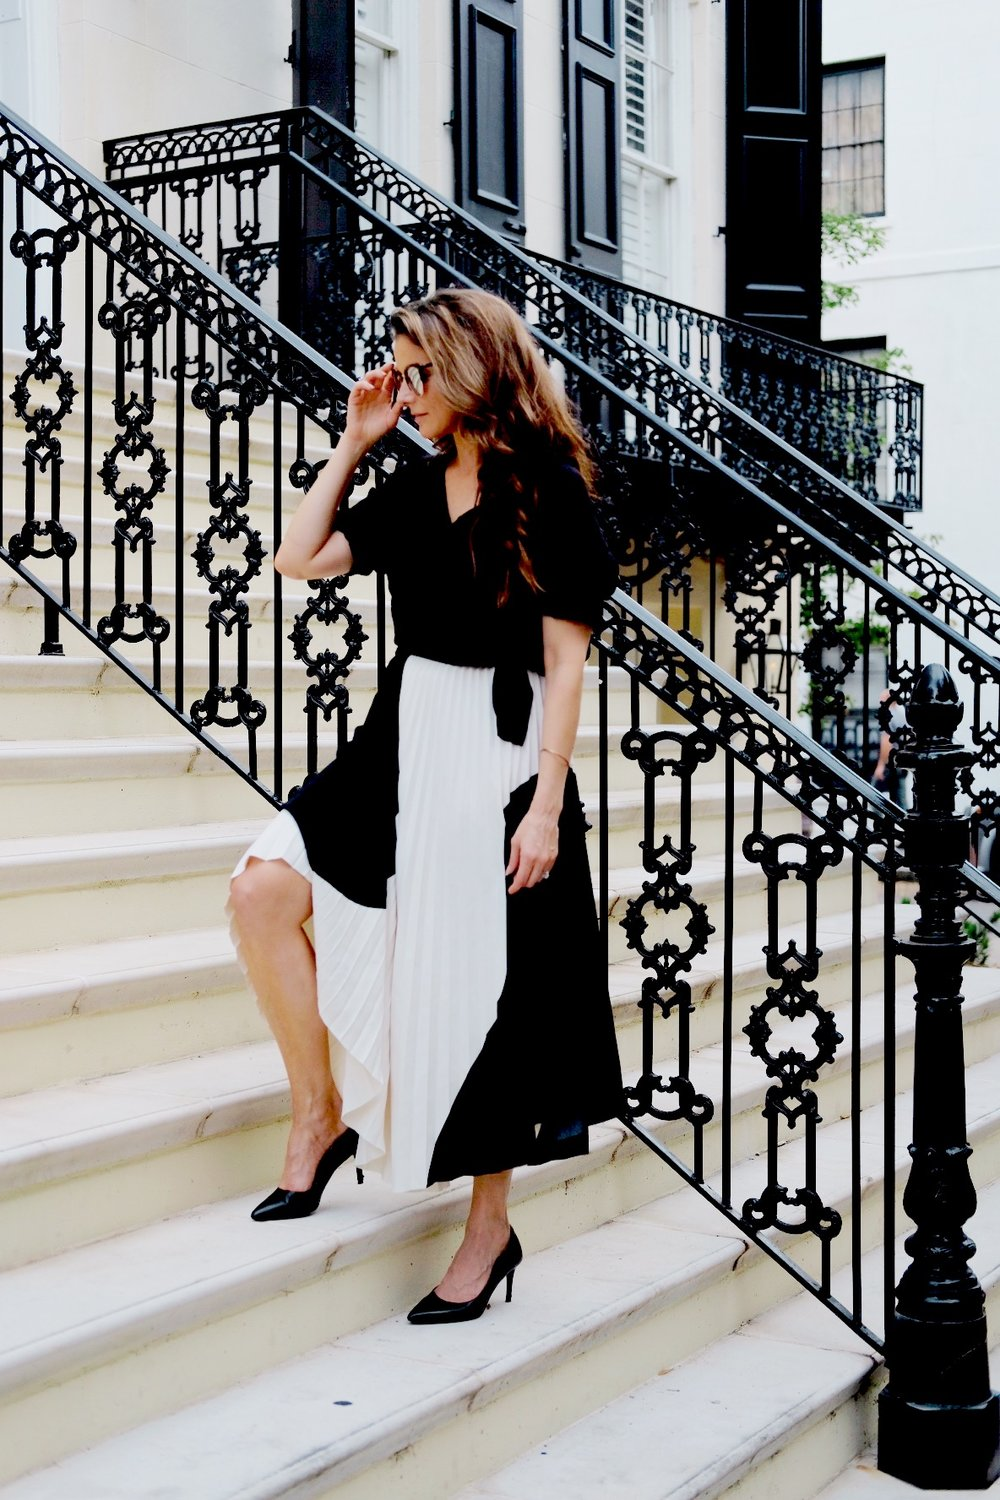 Brenna Lauren Michaels in Black and White Skirt on marble staircase in Savannah, Georgia